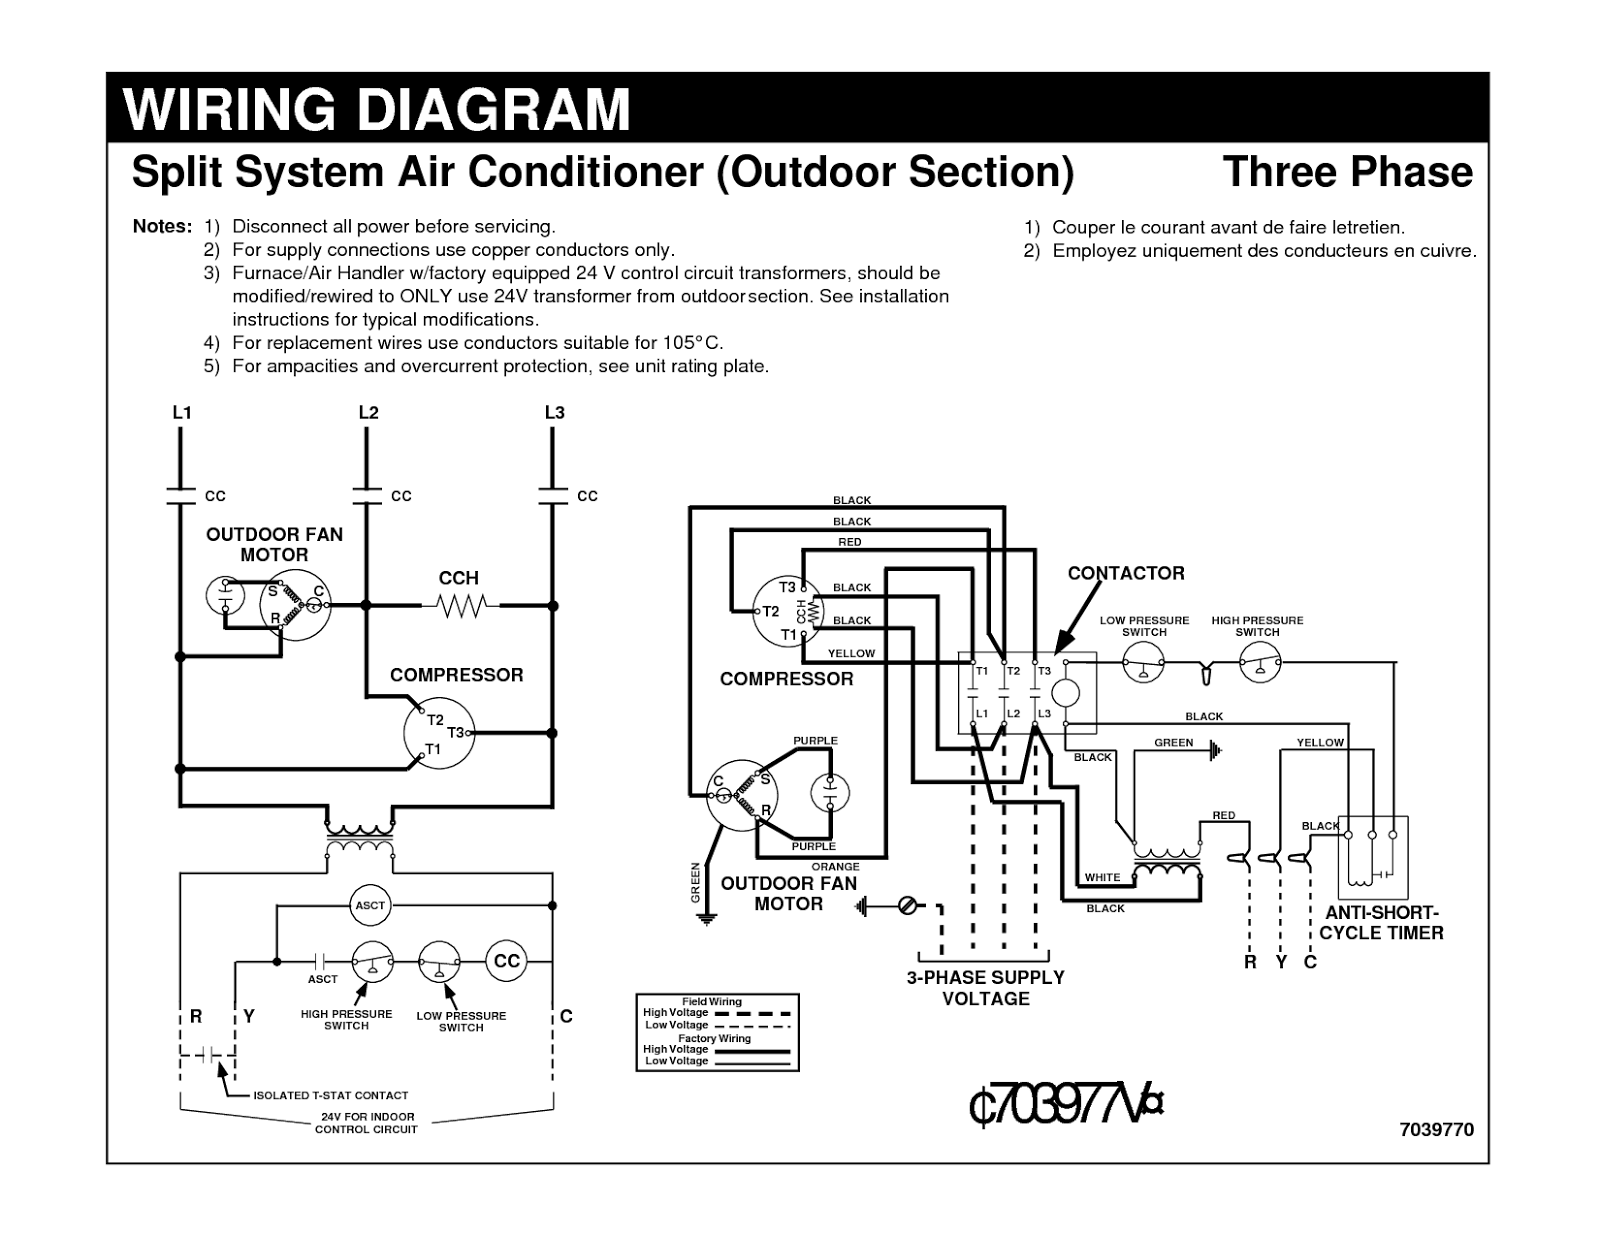 Ladder Wiring Diagram Power Sentry Ps1400 Fluorescent Battery Pack Electrical Diagrams For Air Conditioning Systems